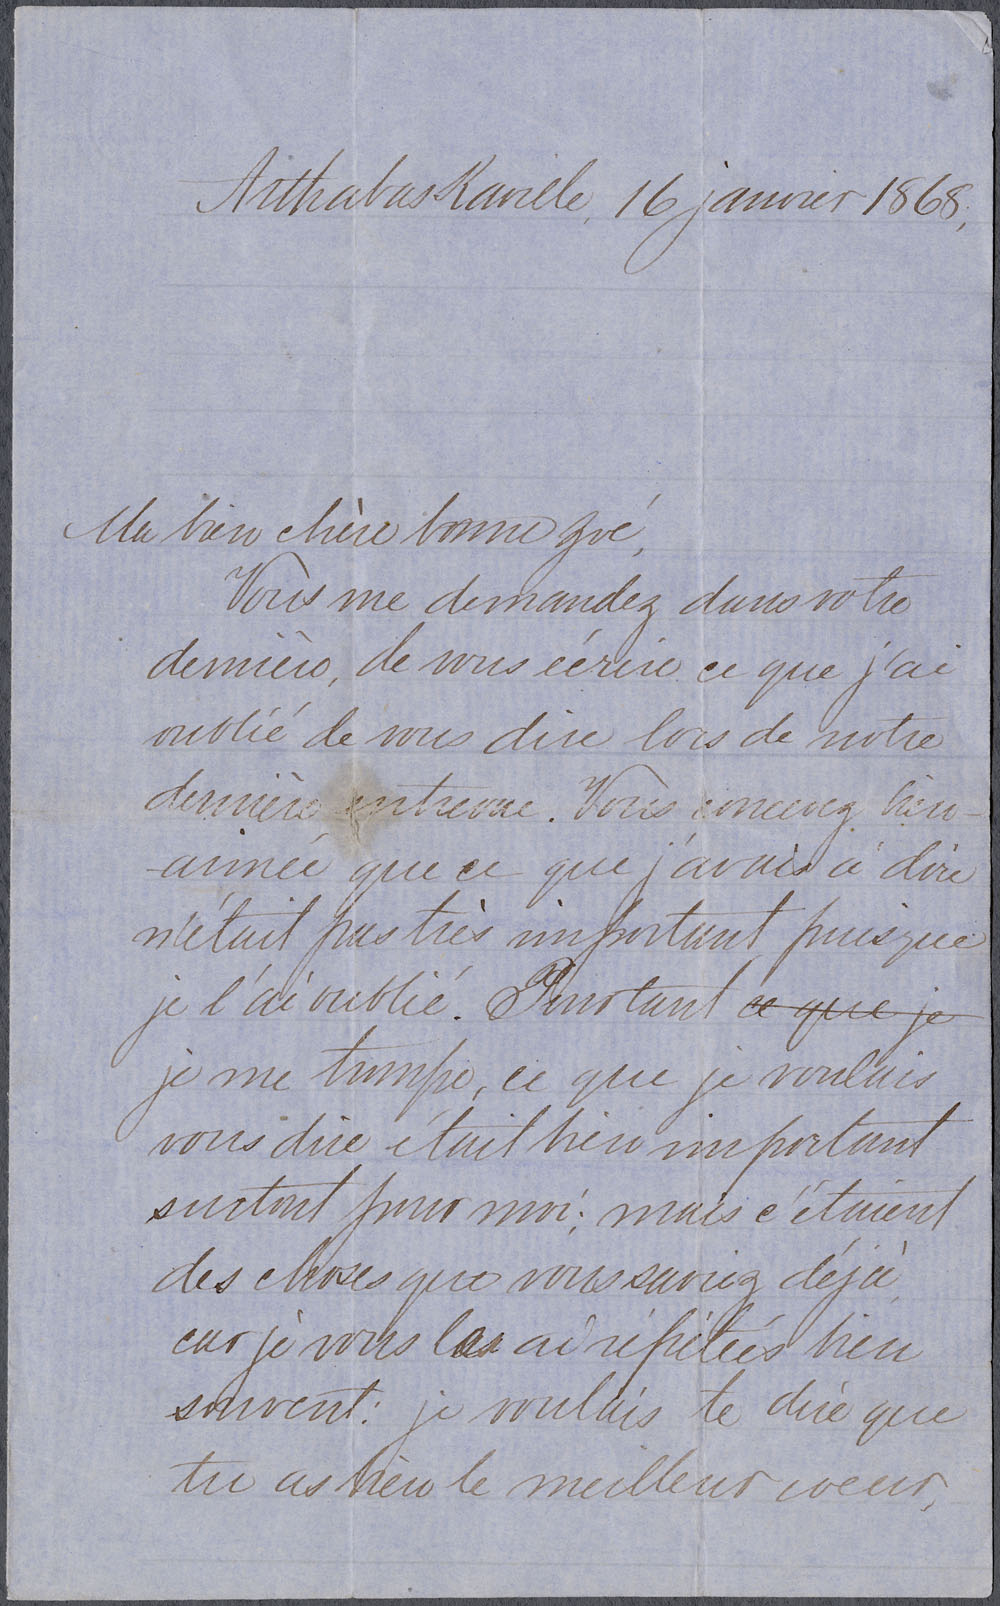 [Correspondence] Wilfrid Laurier  Zo p.d. et 1863-1890. (item 5)